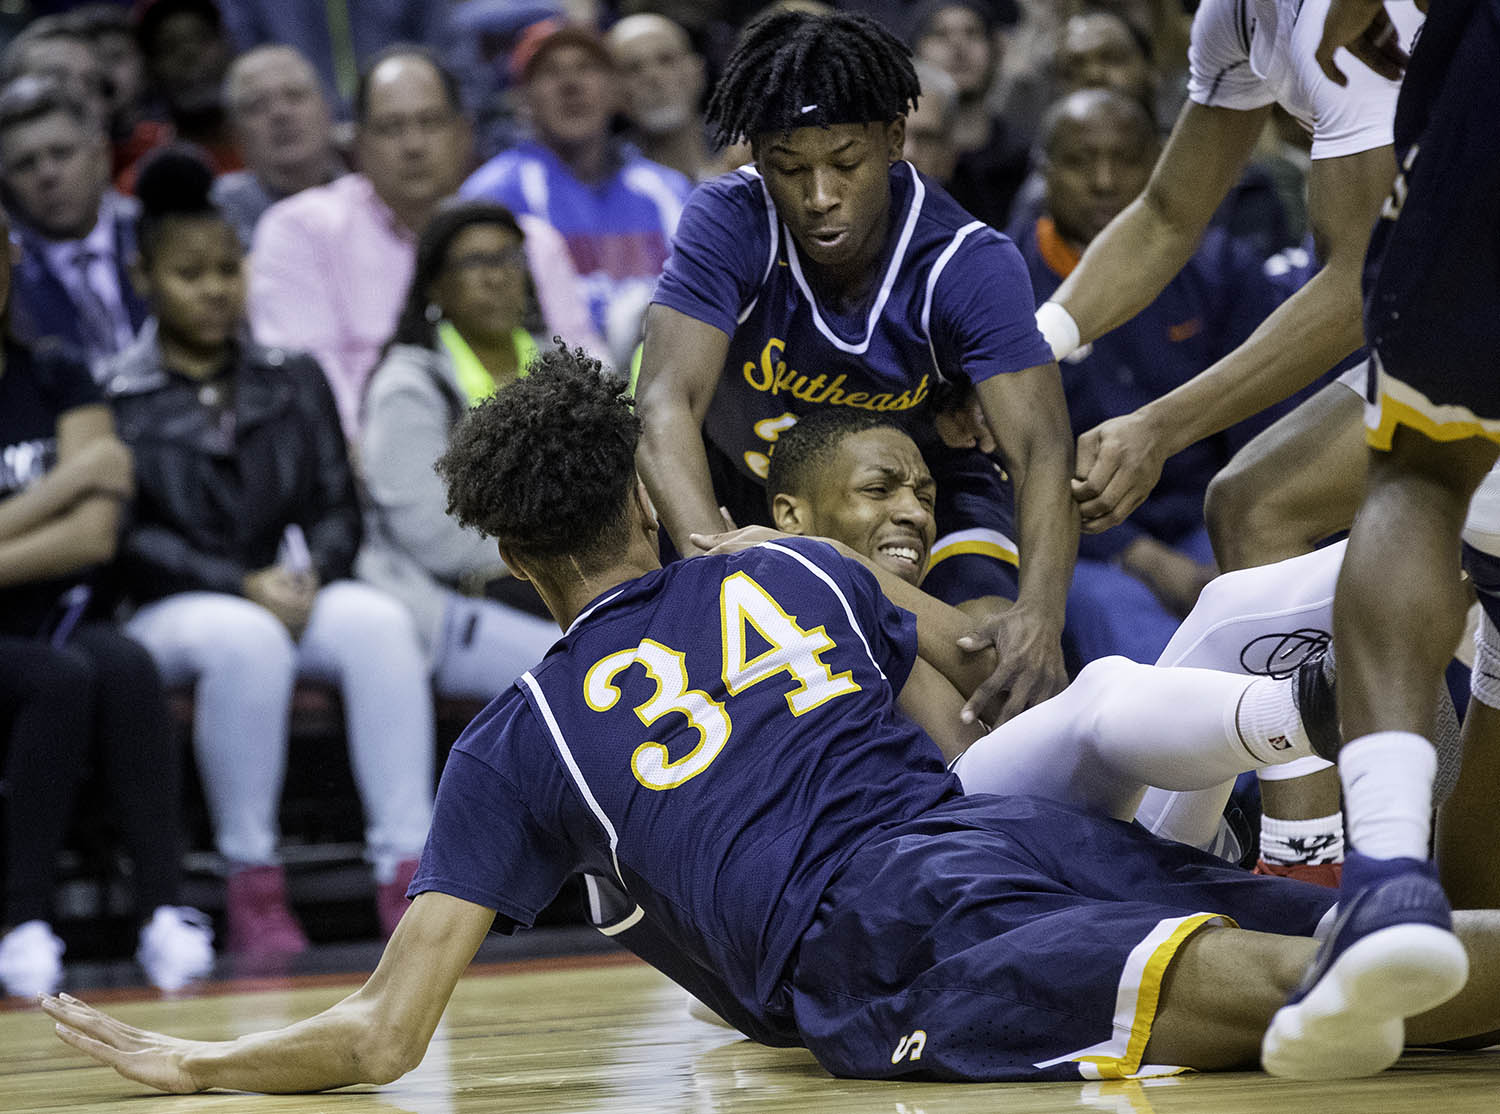 Southeast's Michael Tyler and Southeast's Stepheon Sims smother Morgan Park's Cam Burrell after he recovered a loose ball during the 3A championship game at Carver Arena in Peoria, Ill., Saturday, March 17, 2018. [Ted Schurter/The State Journal-Register]